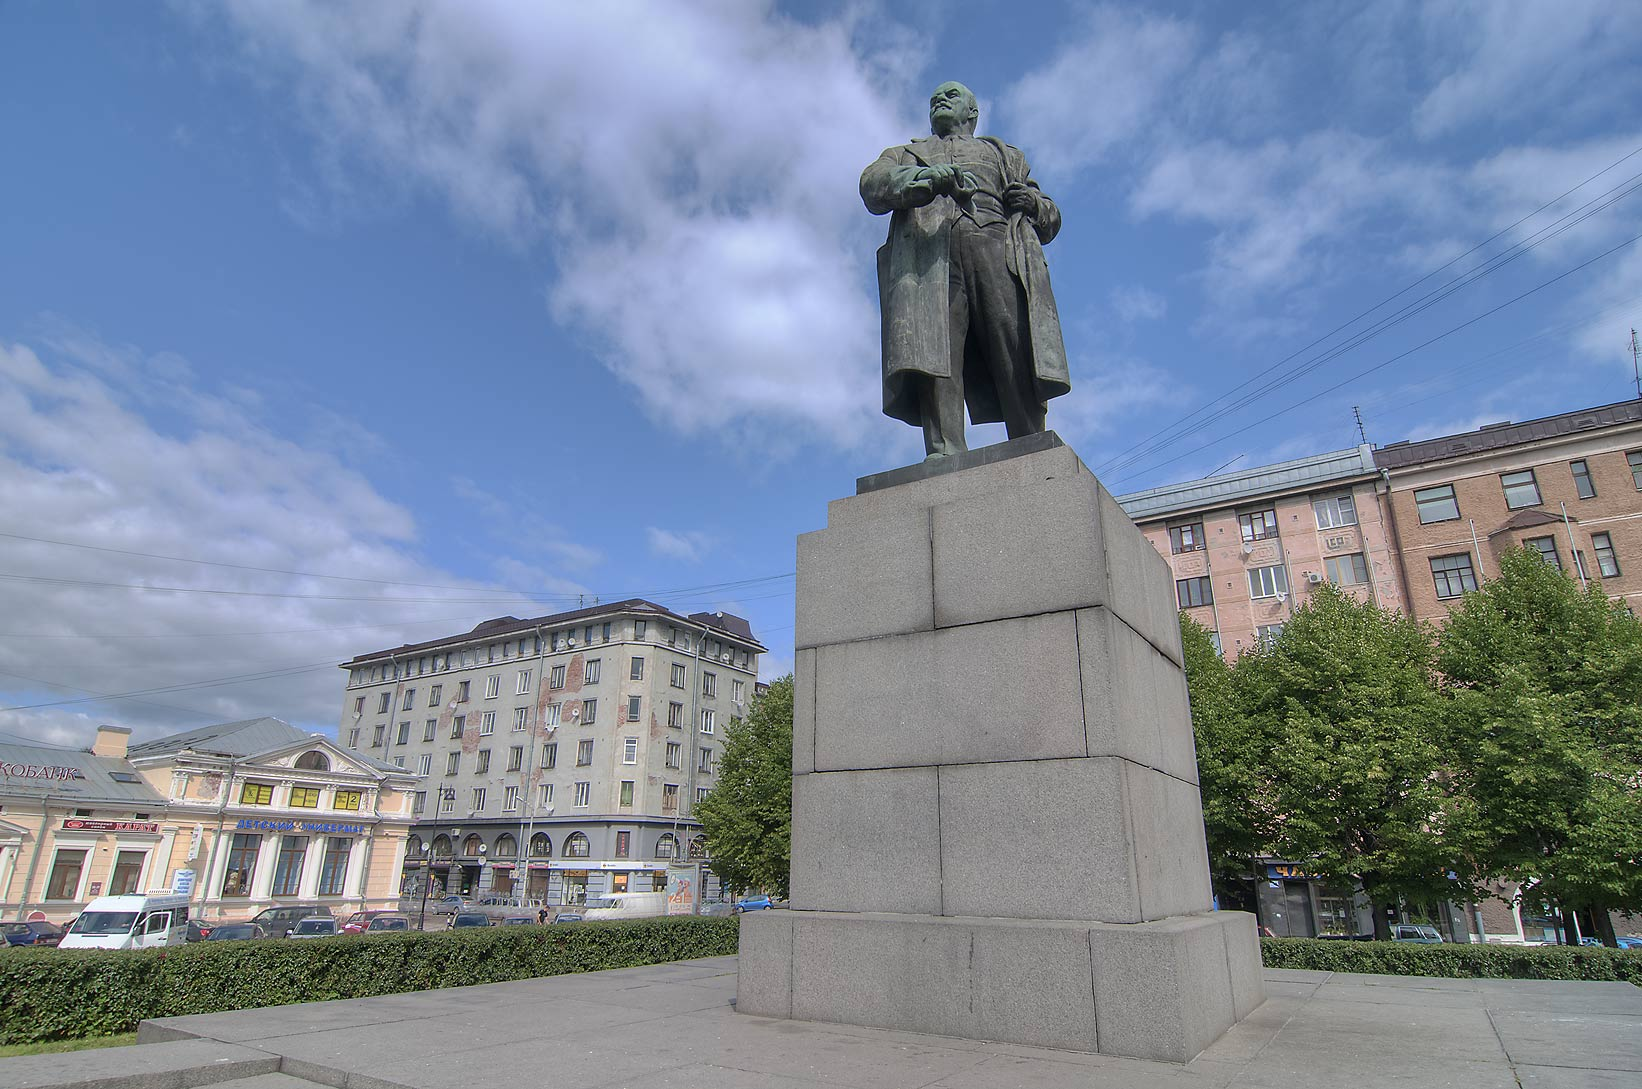 Monument of Russian revolutioner V. I. Lenin on central city square. Vyborg, Russia